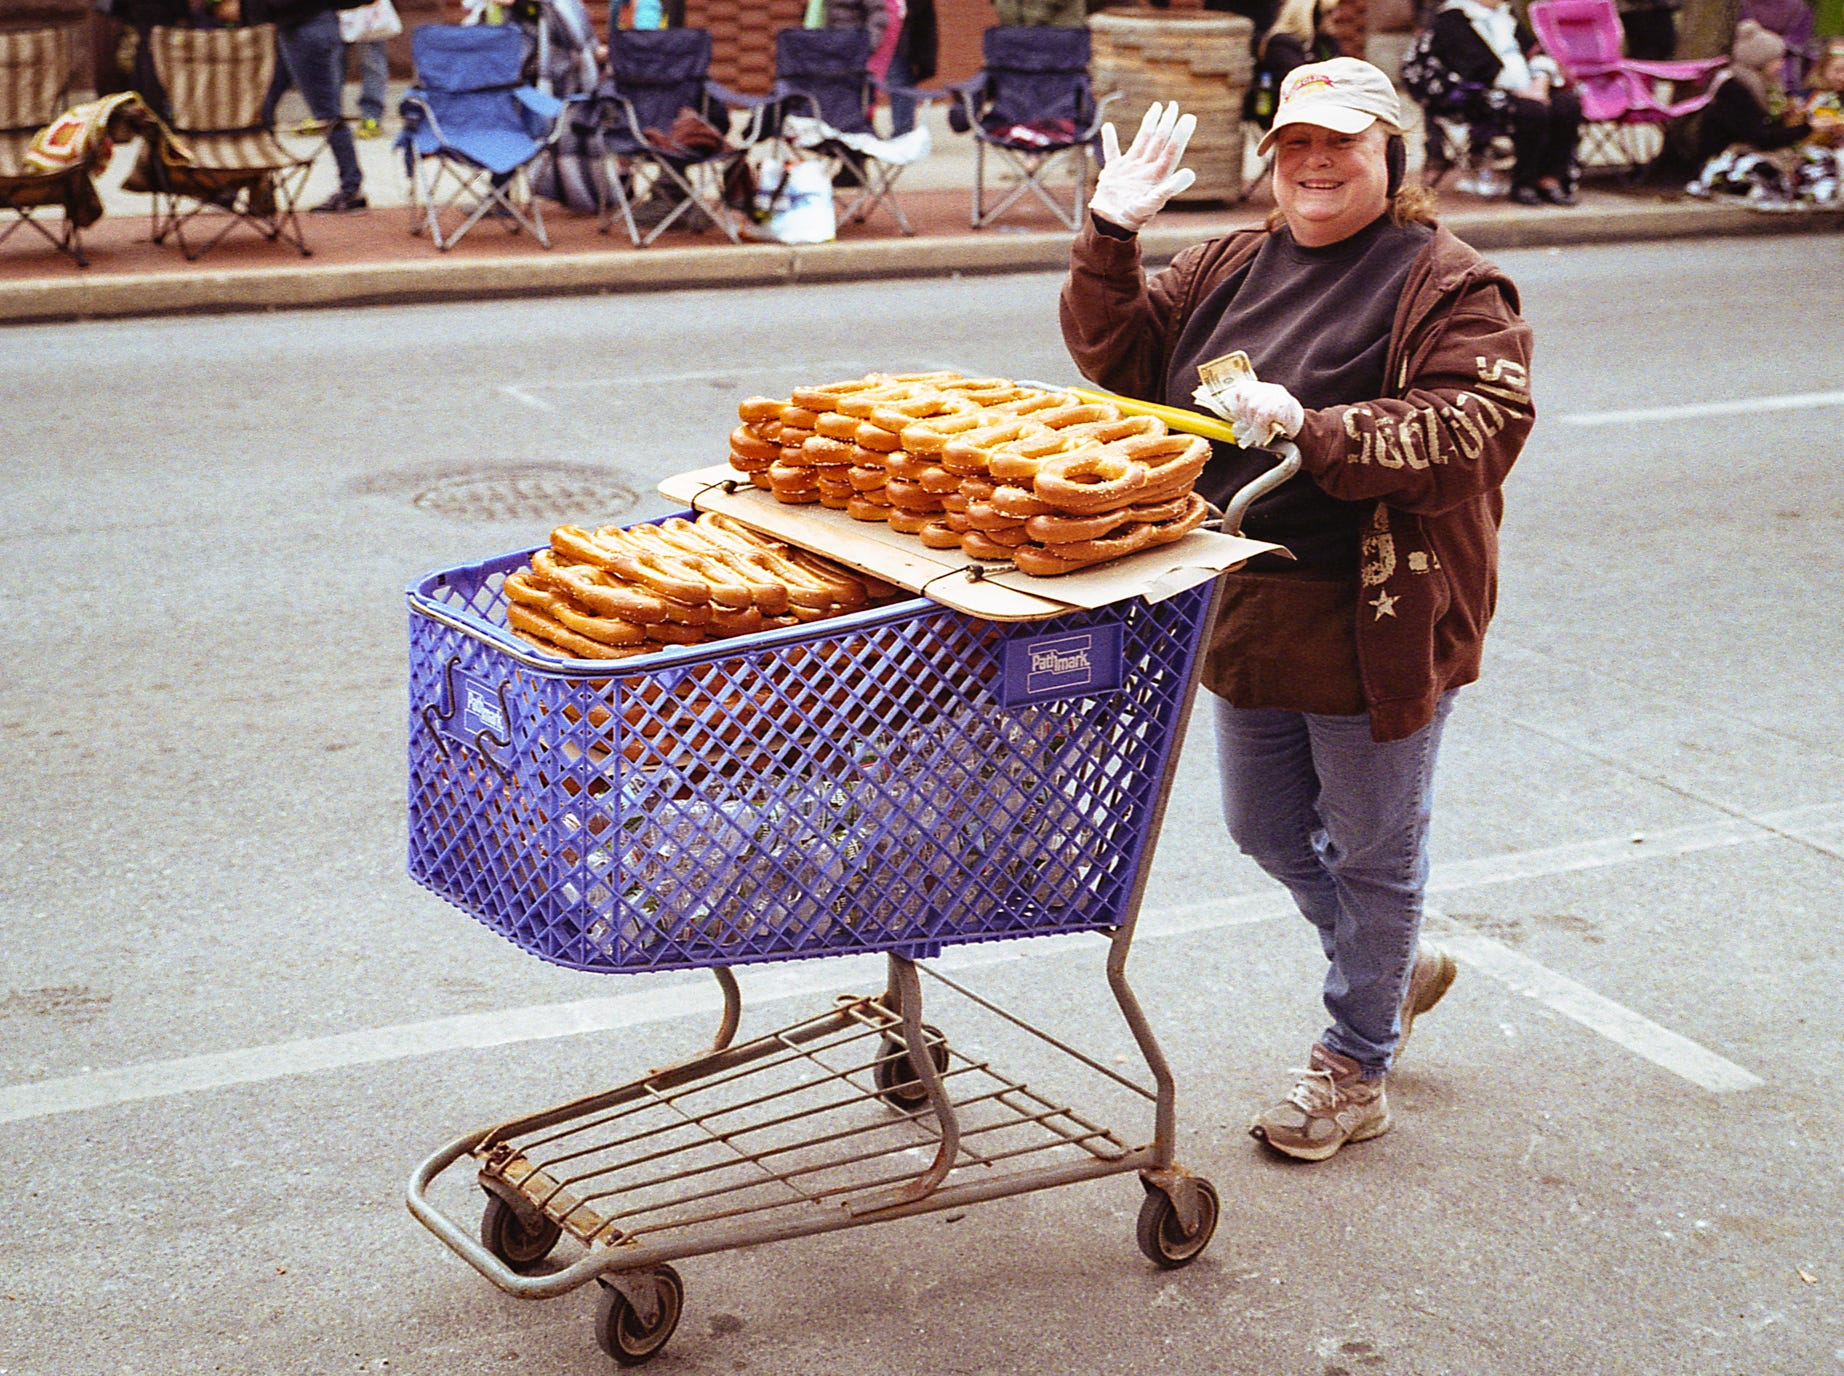 Gentzler began watching YouTube videos, reading books and blogs, listening to podcasts and asking advice about all things photography to learn as much as he could.  This is a photo of a vendor selling pretzels before the 2018 St. Patrick's Day parade. [Nikon F100] [Agfa Vista 200]